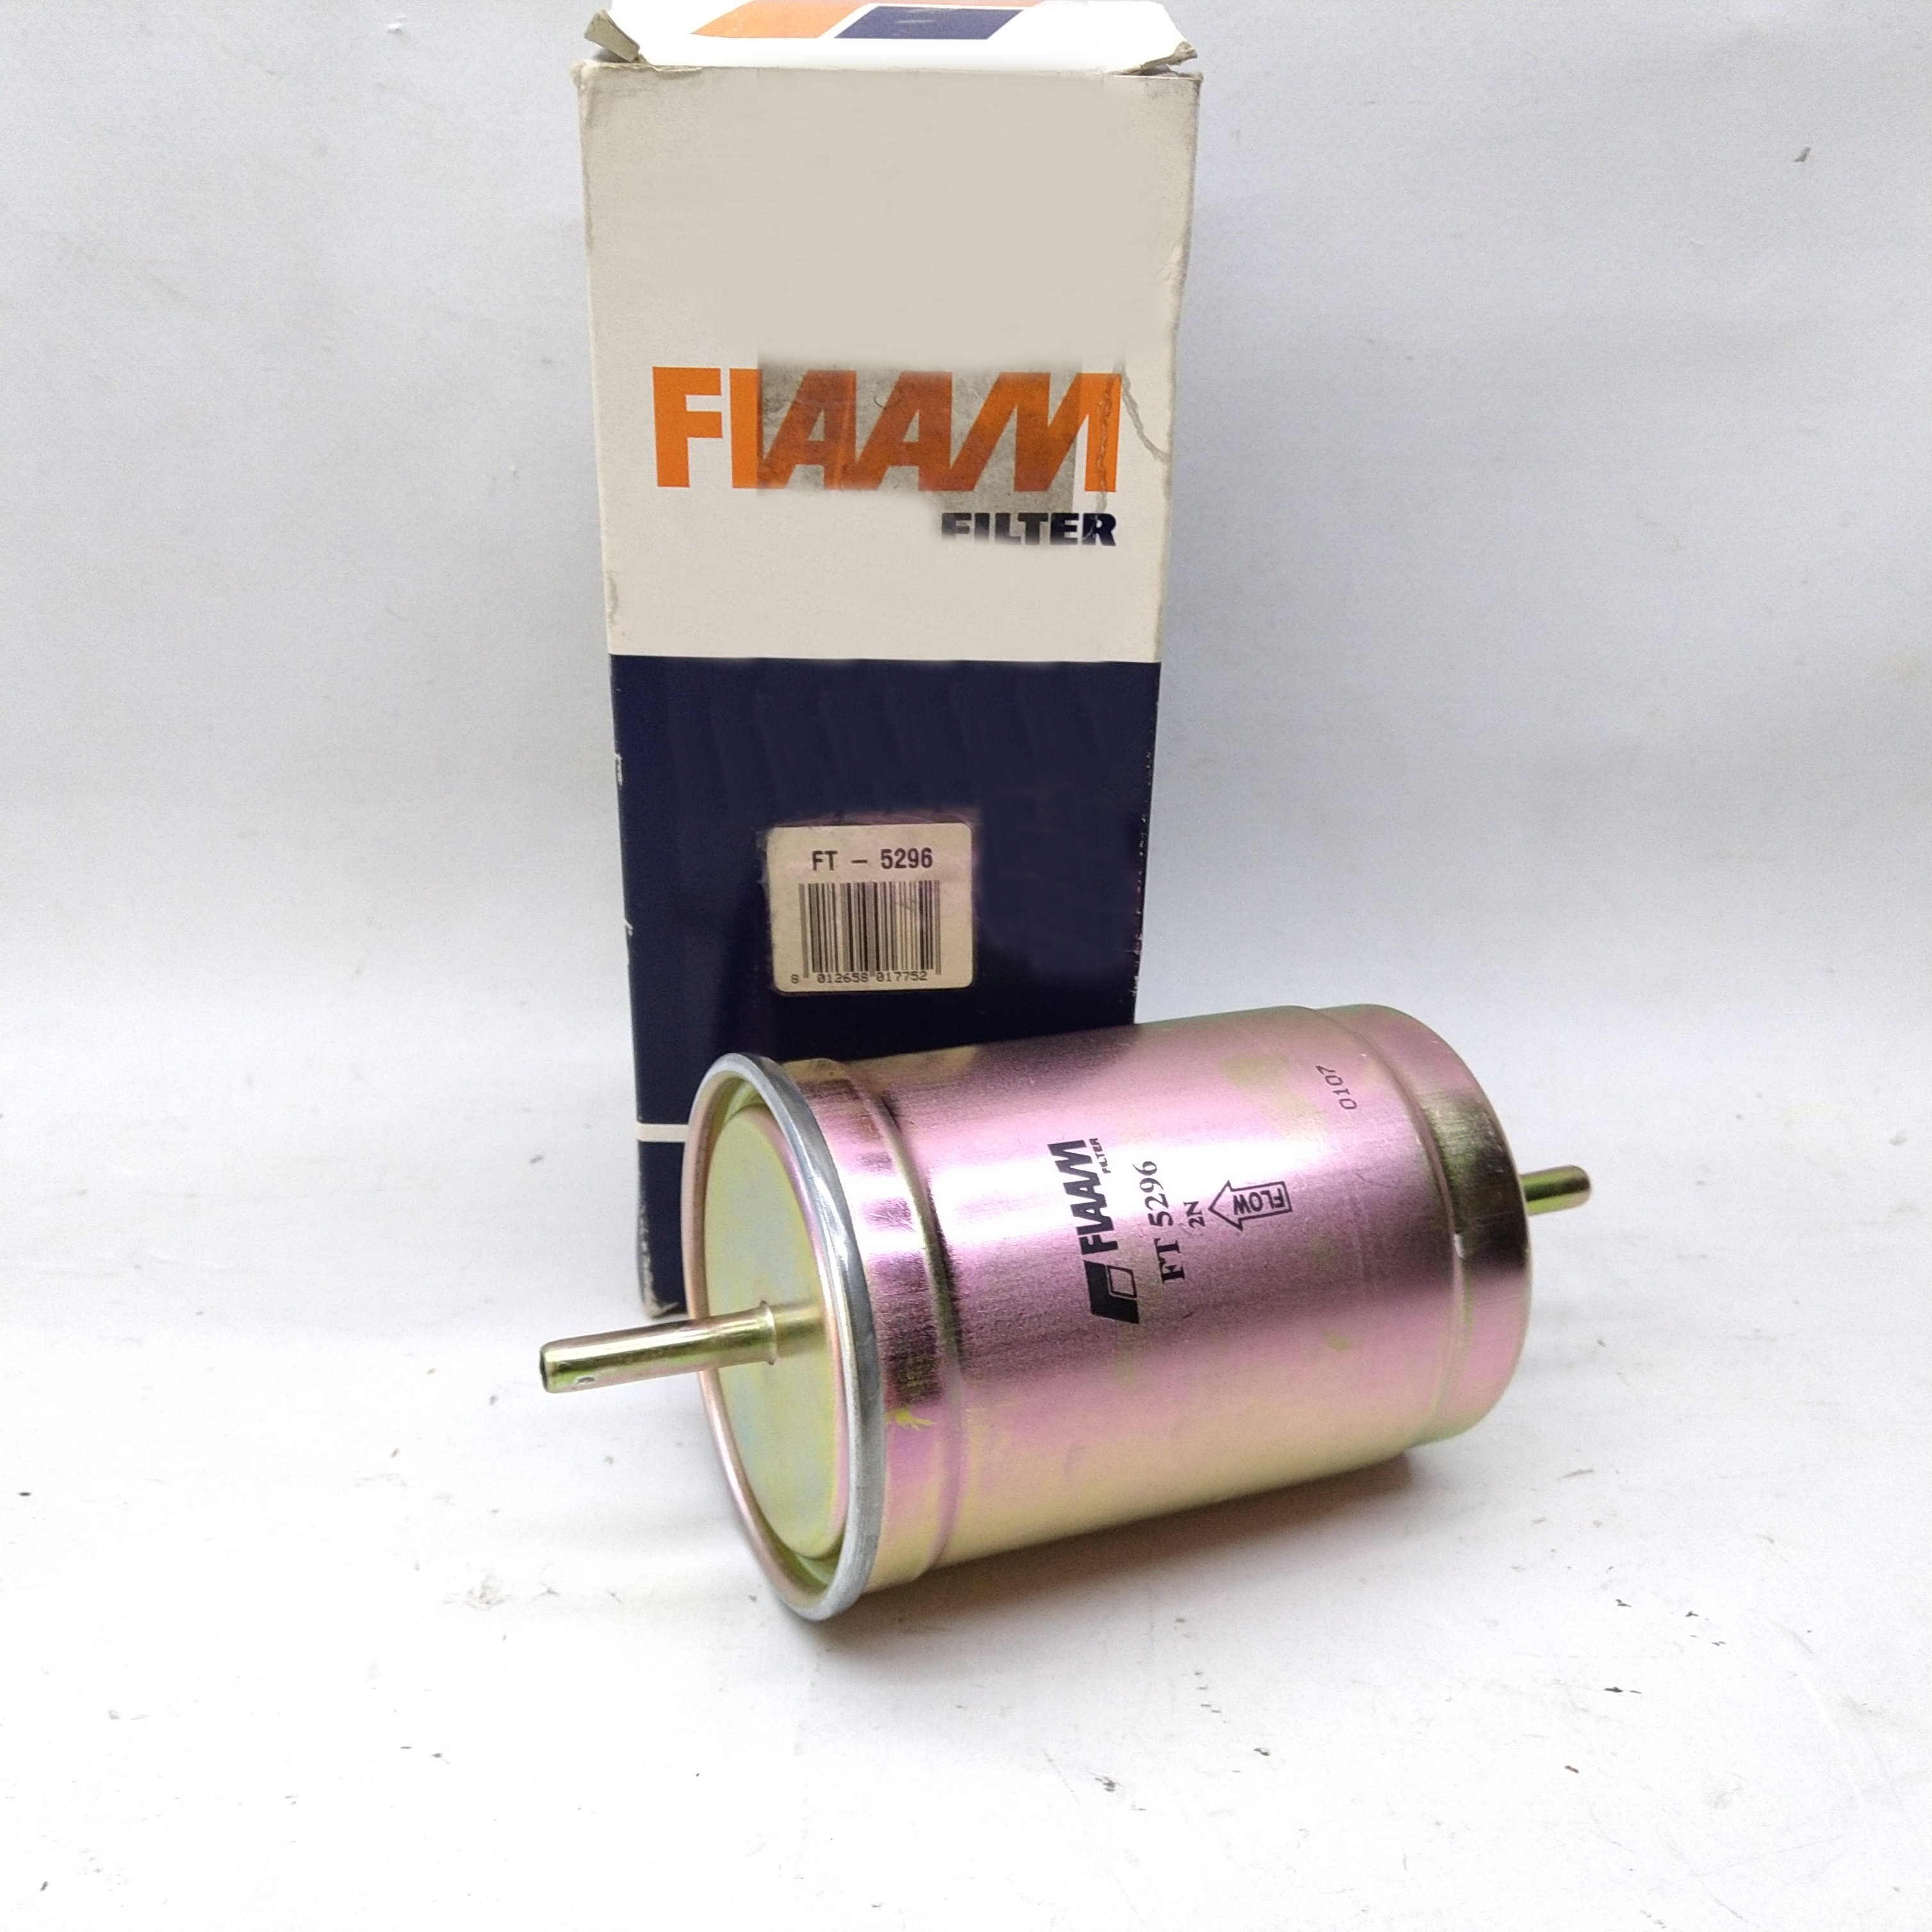 FILTRO CARBURANTE FORD ESCORT - ORION - VOLVO 850  - C70 FIAAM PER 6192187